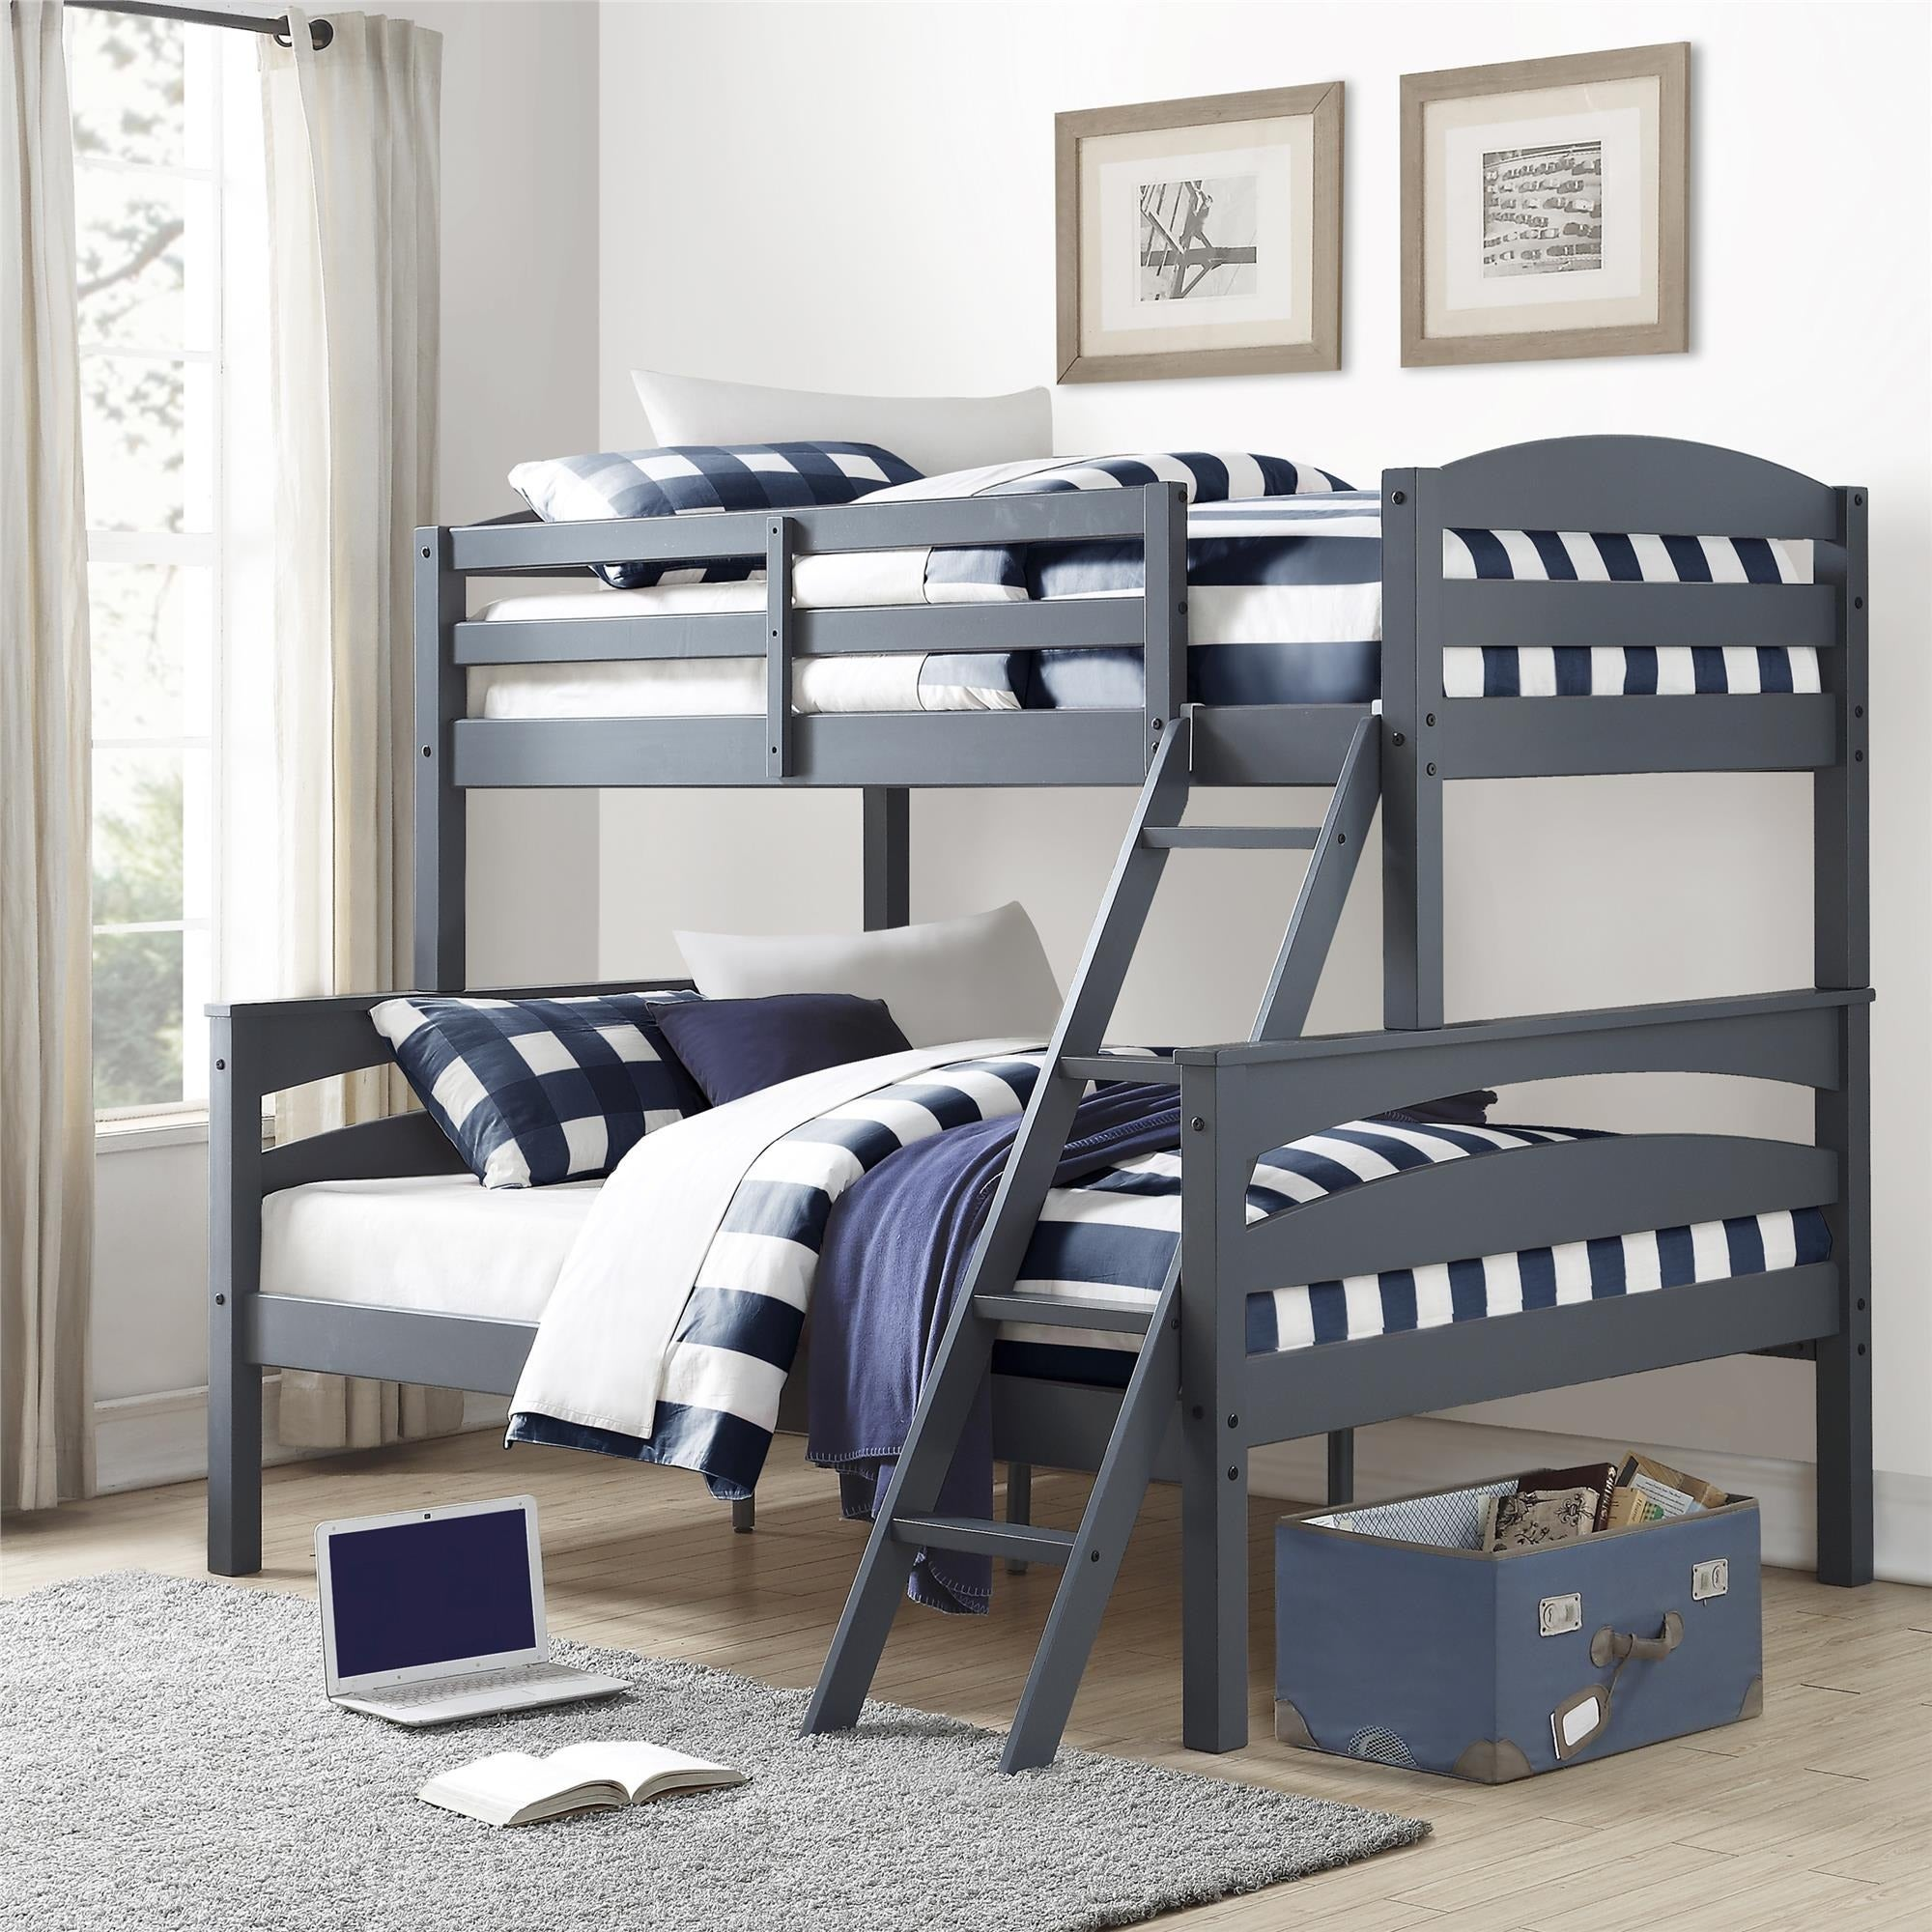 beds white bed over bunk full amazing ideas